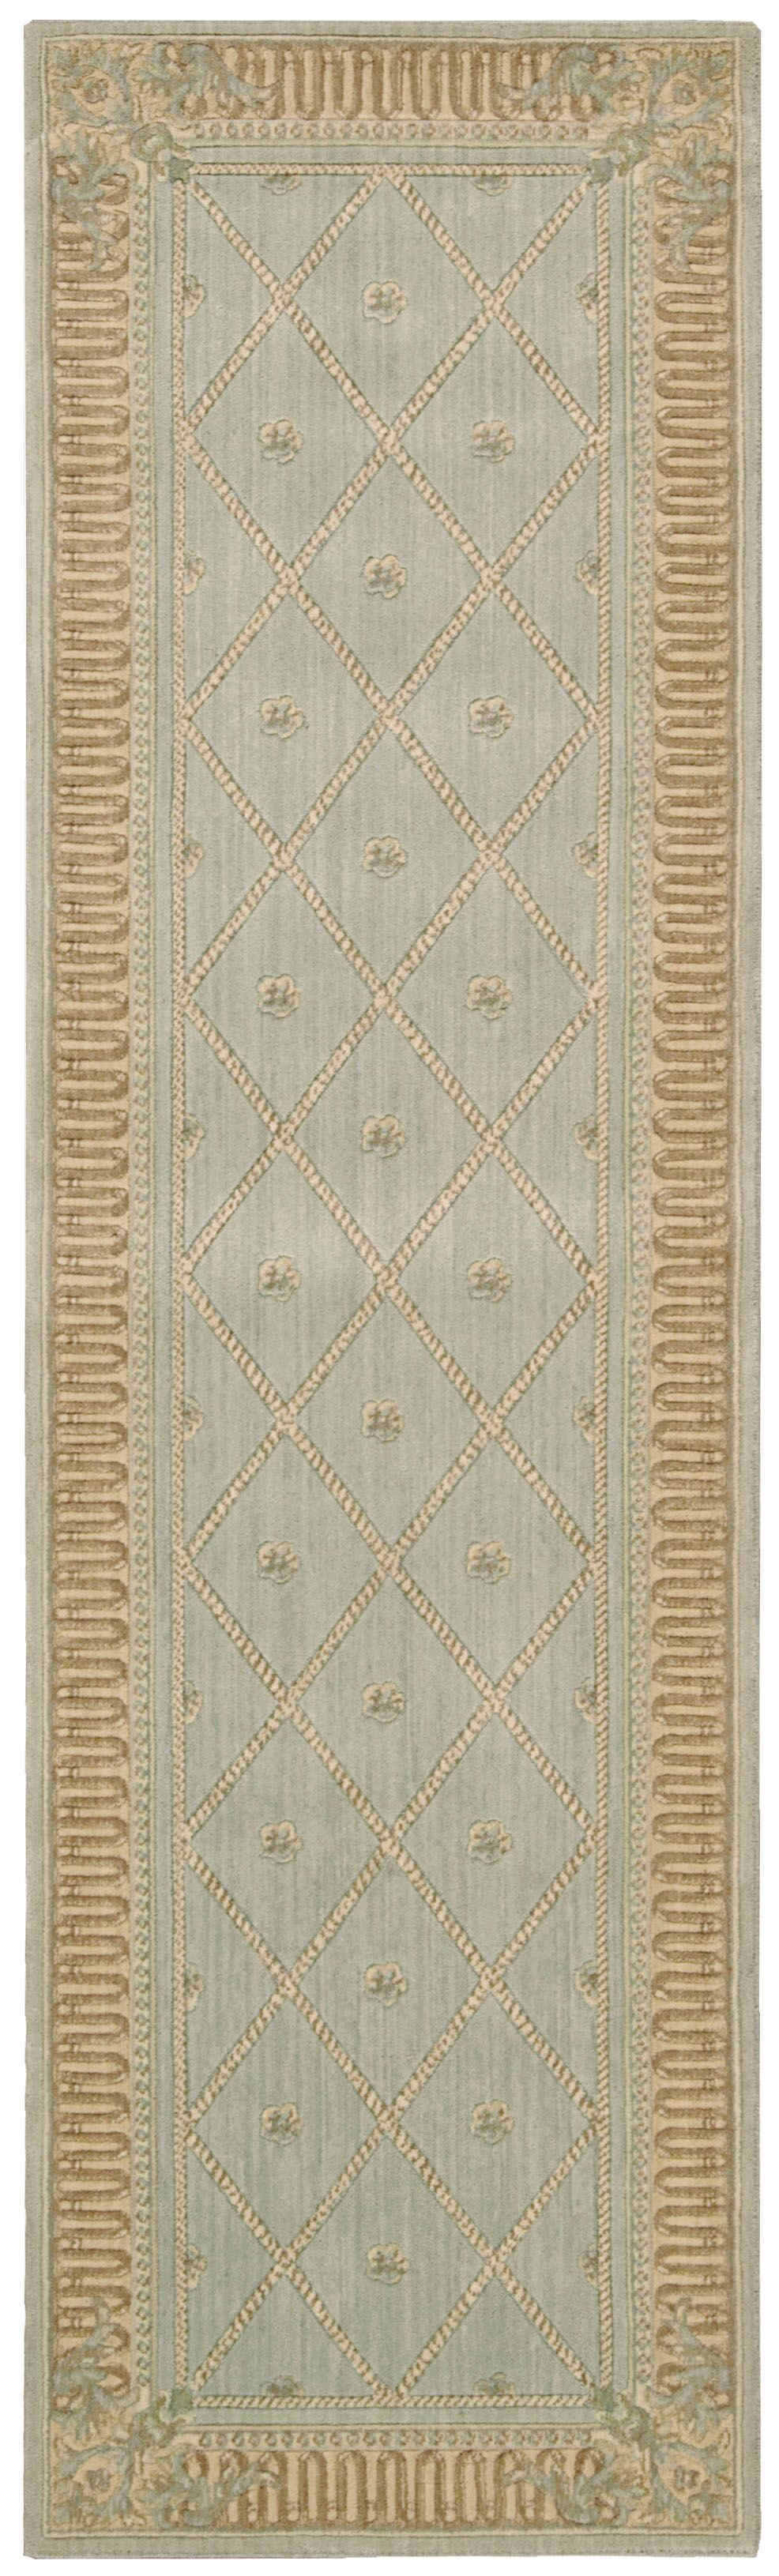 Ashton House Machine Woven Surf Area Rugs